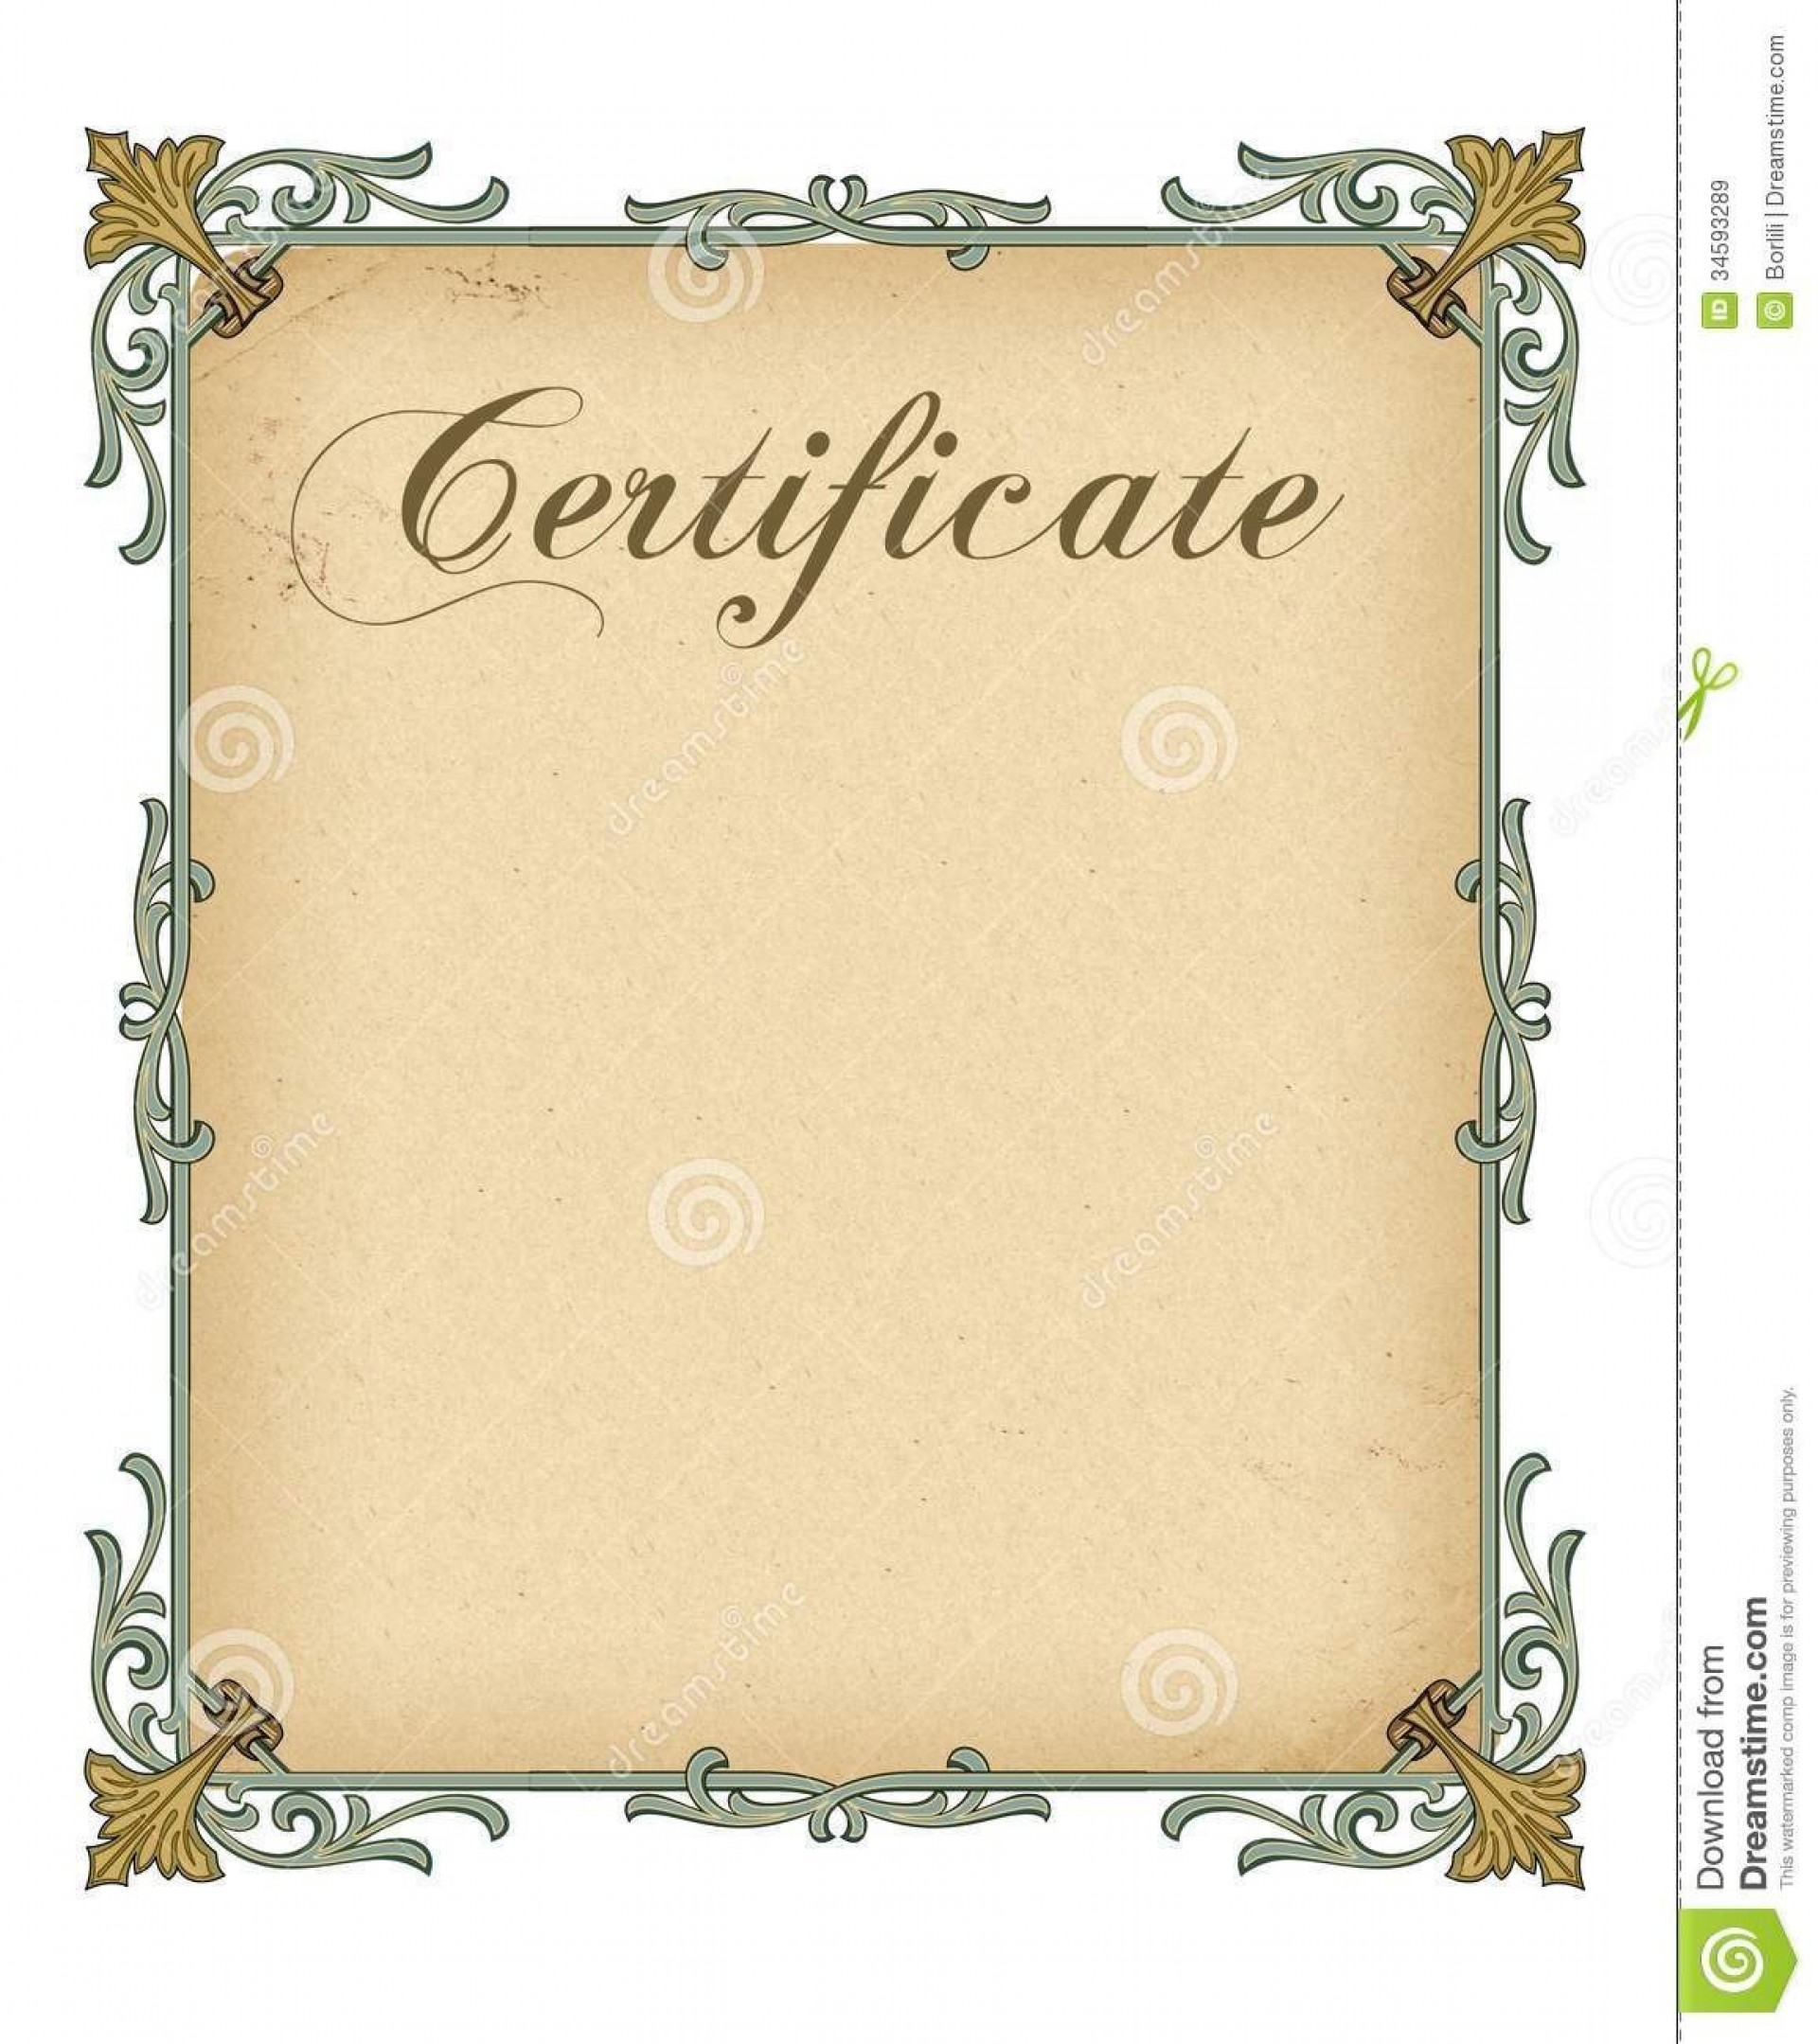 006 Remarkable Free Blank Certificate Template Example  Templates Downloadable Printable And Award Gift For Word1920